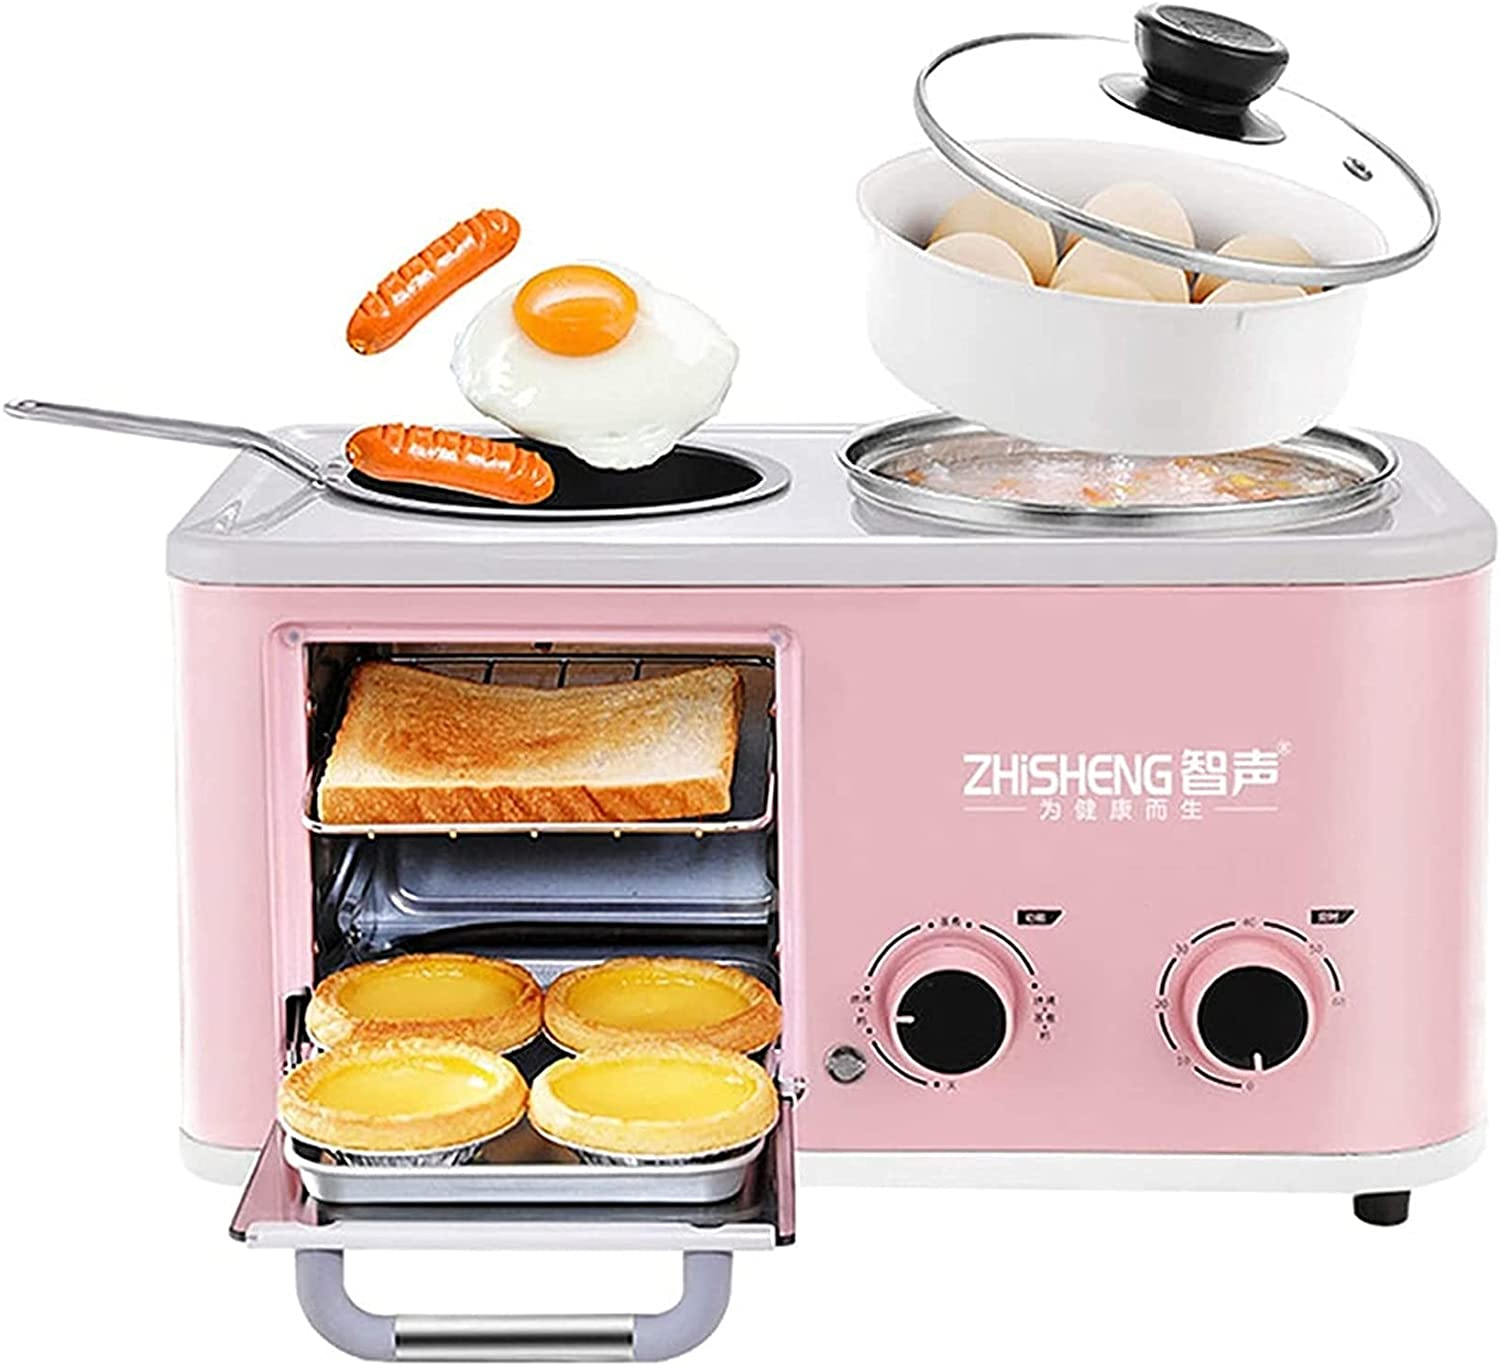 HCHENX Mini Oven Four In One Breakfast Machine - Small Portable Electric Grill - Adjustable Temperature Control, Timer - Multi Cooking Function Grill And Bake Various Capacities (1.2L) Toaster Oven ai